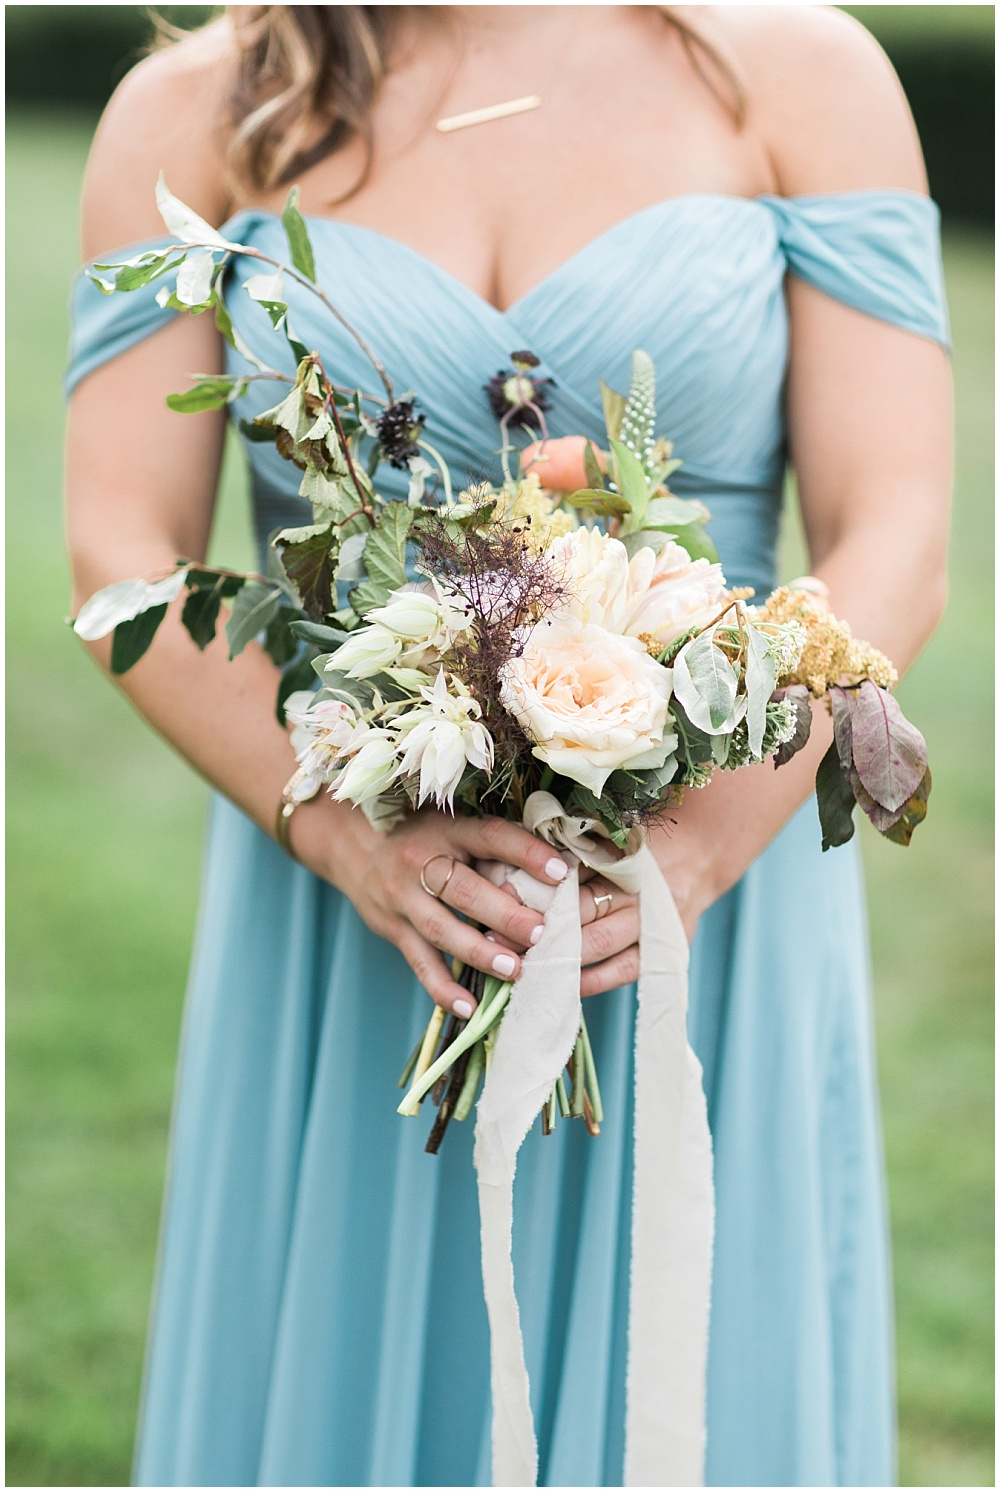 blue bridesmaid dress; off-the-shoulder bridesmaid dress; organic-looking neutral bouquet; Mexican inspired gold & floral wedding; Crowne Plaza Indianapolis Downtown Union Station; neutral floral and greenery wedding|Cory + Jackie and Jessica Dum Wedding Coordination